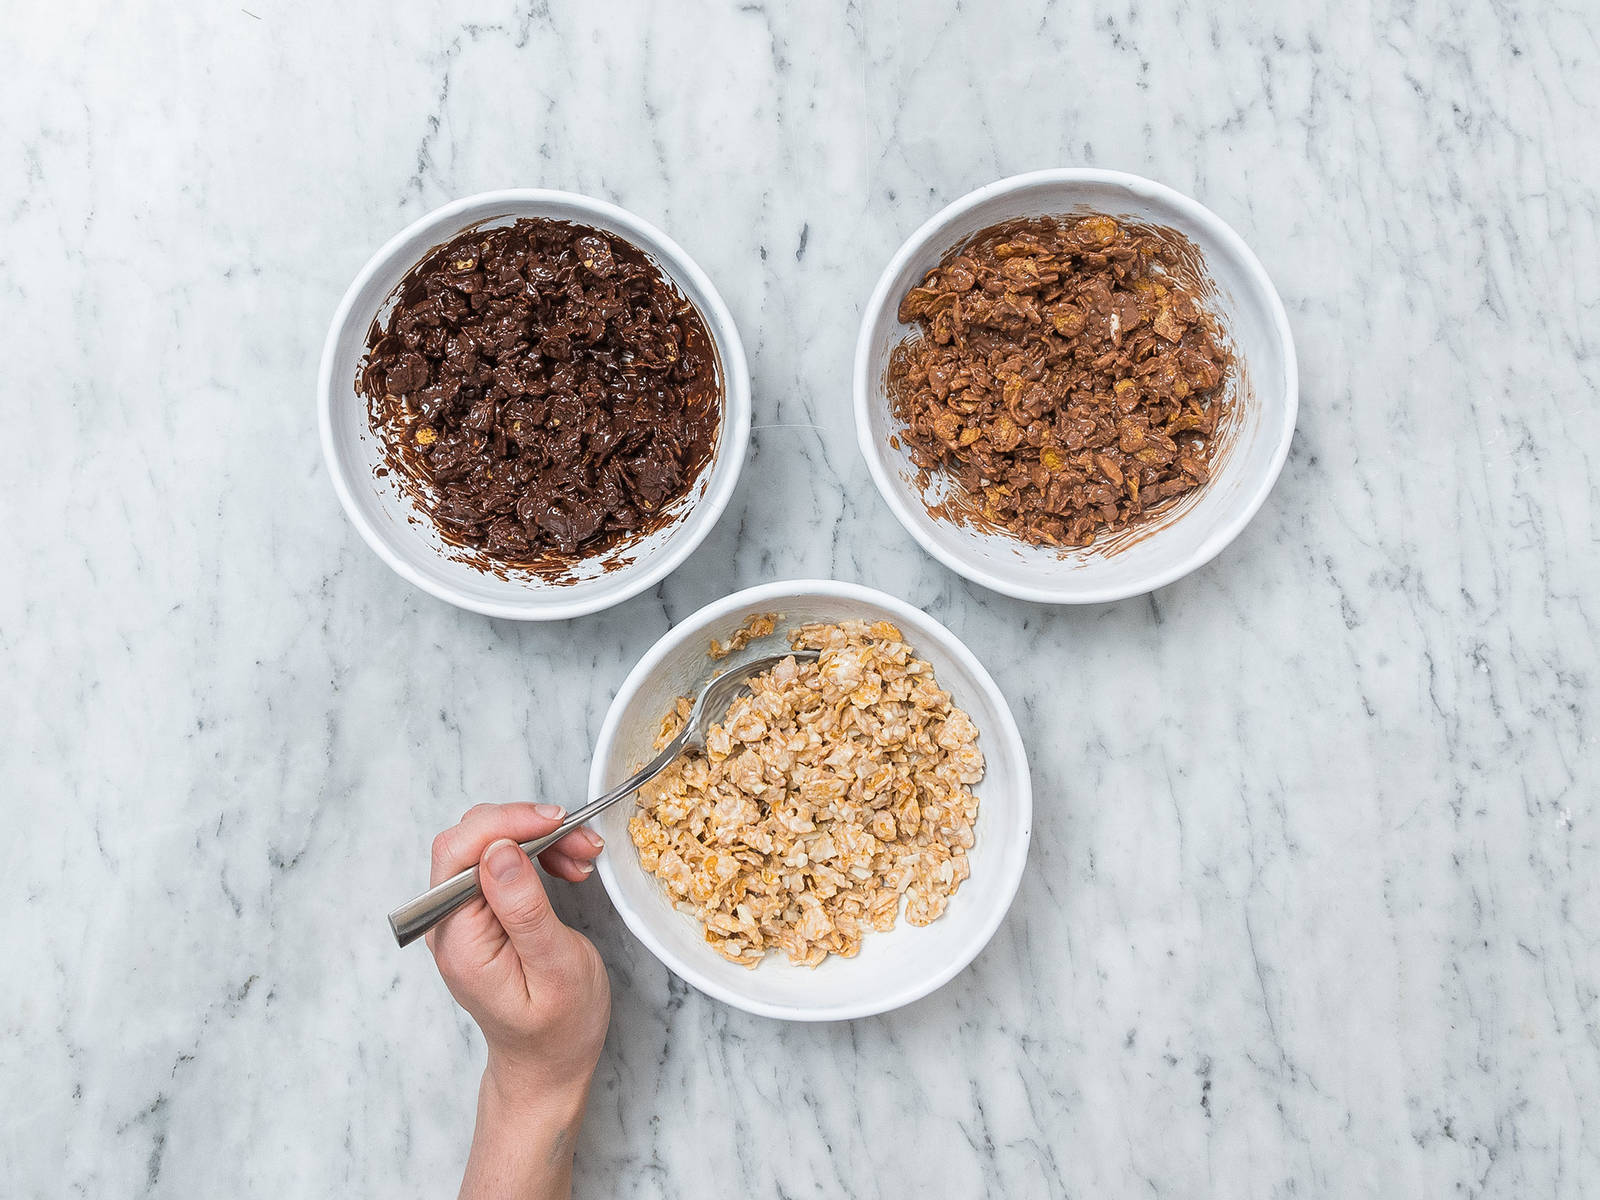 Add each type of chocolate to a separate mixing bowl. Melt one after the other over a pot of simmering water. Stir gently until melted, then let cool down slightly. Equally divide the cornflakes-almond mixture into the chocolate bowls. Toss to coat each chocolate mixture.